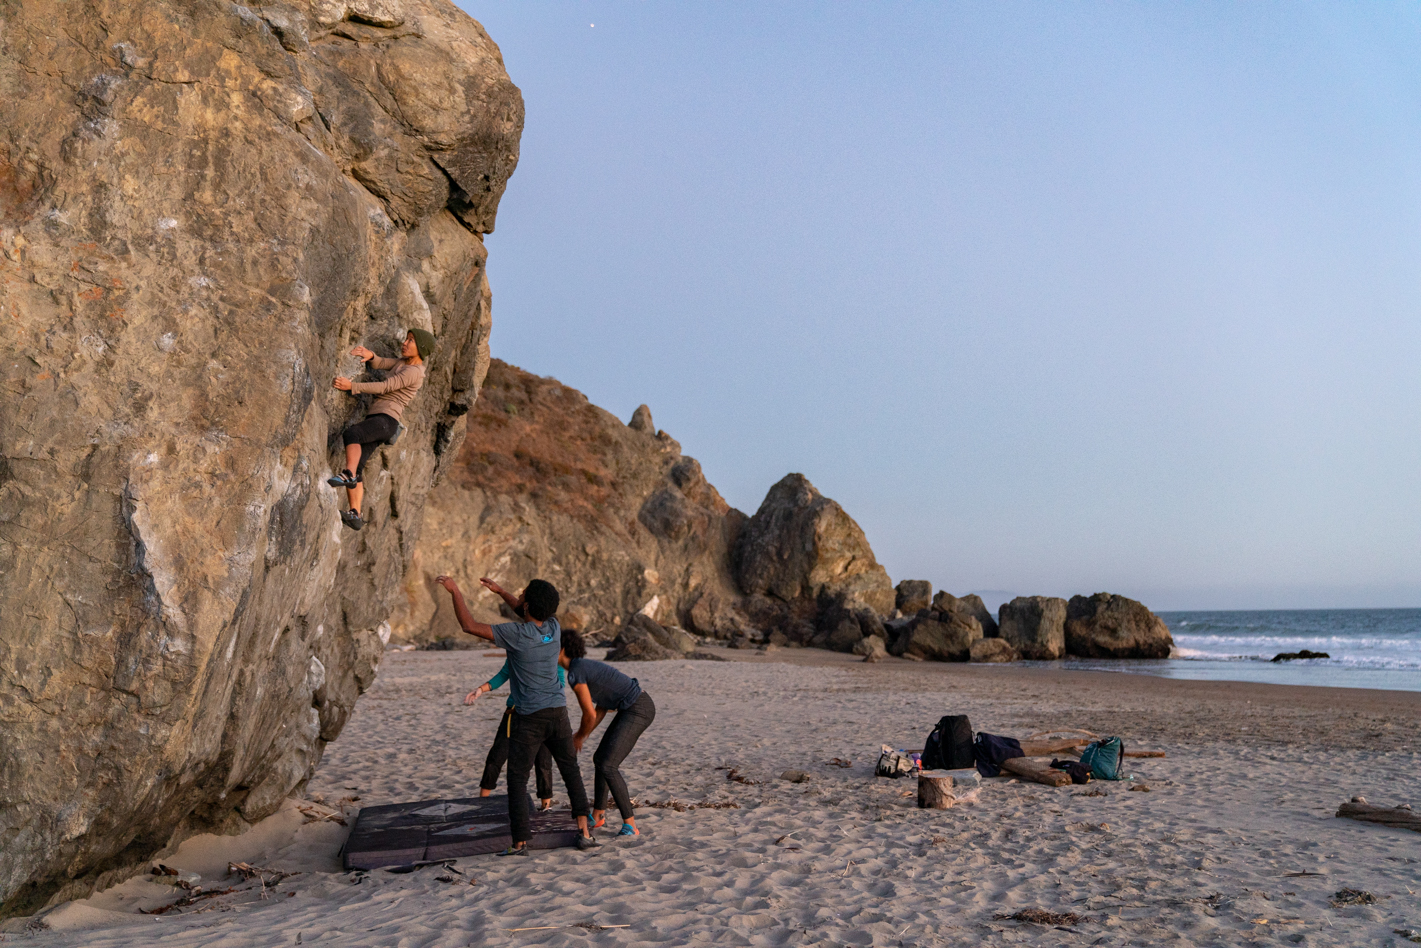 A group of climbers (Narinda H., Kaily H., Justin F.P. and Jael B.) take on some sunset bouldering at Stinson Beach, CA.